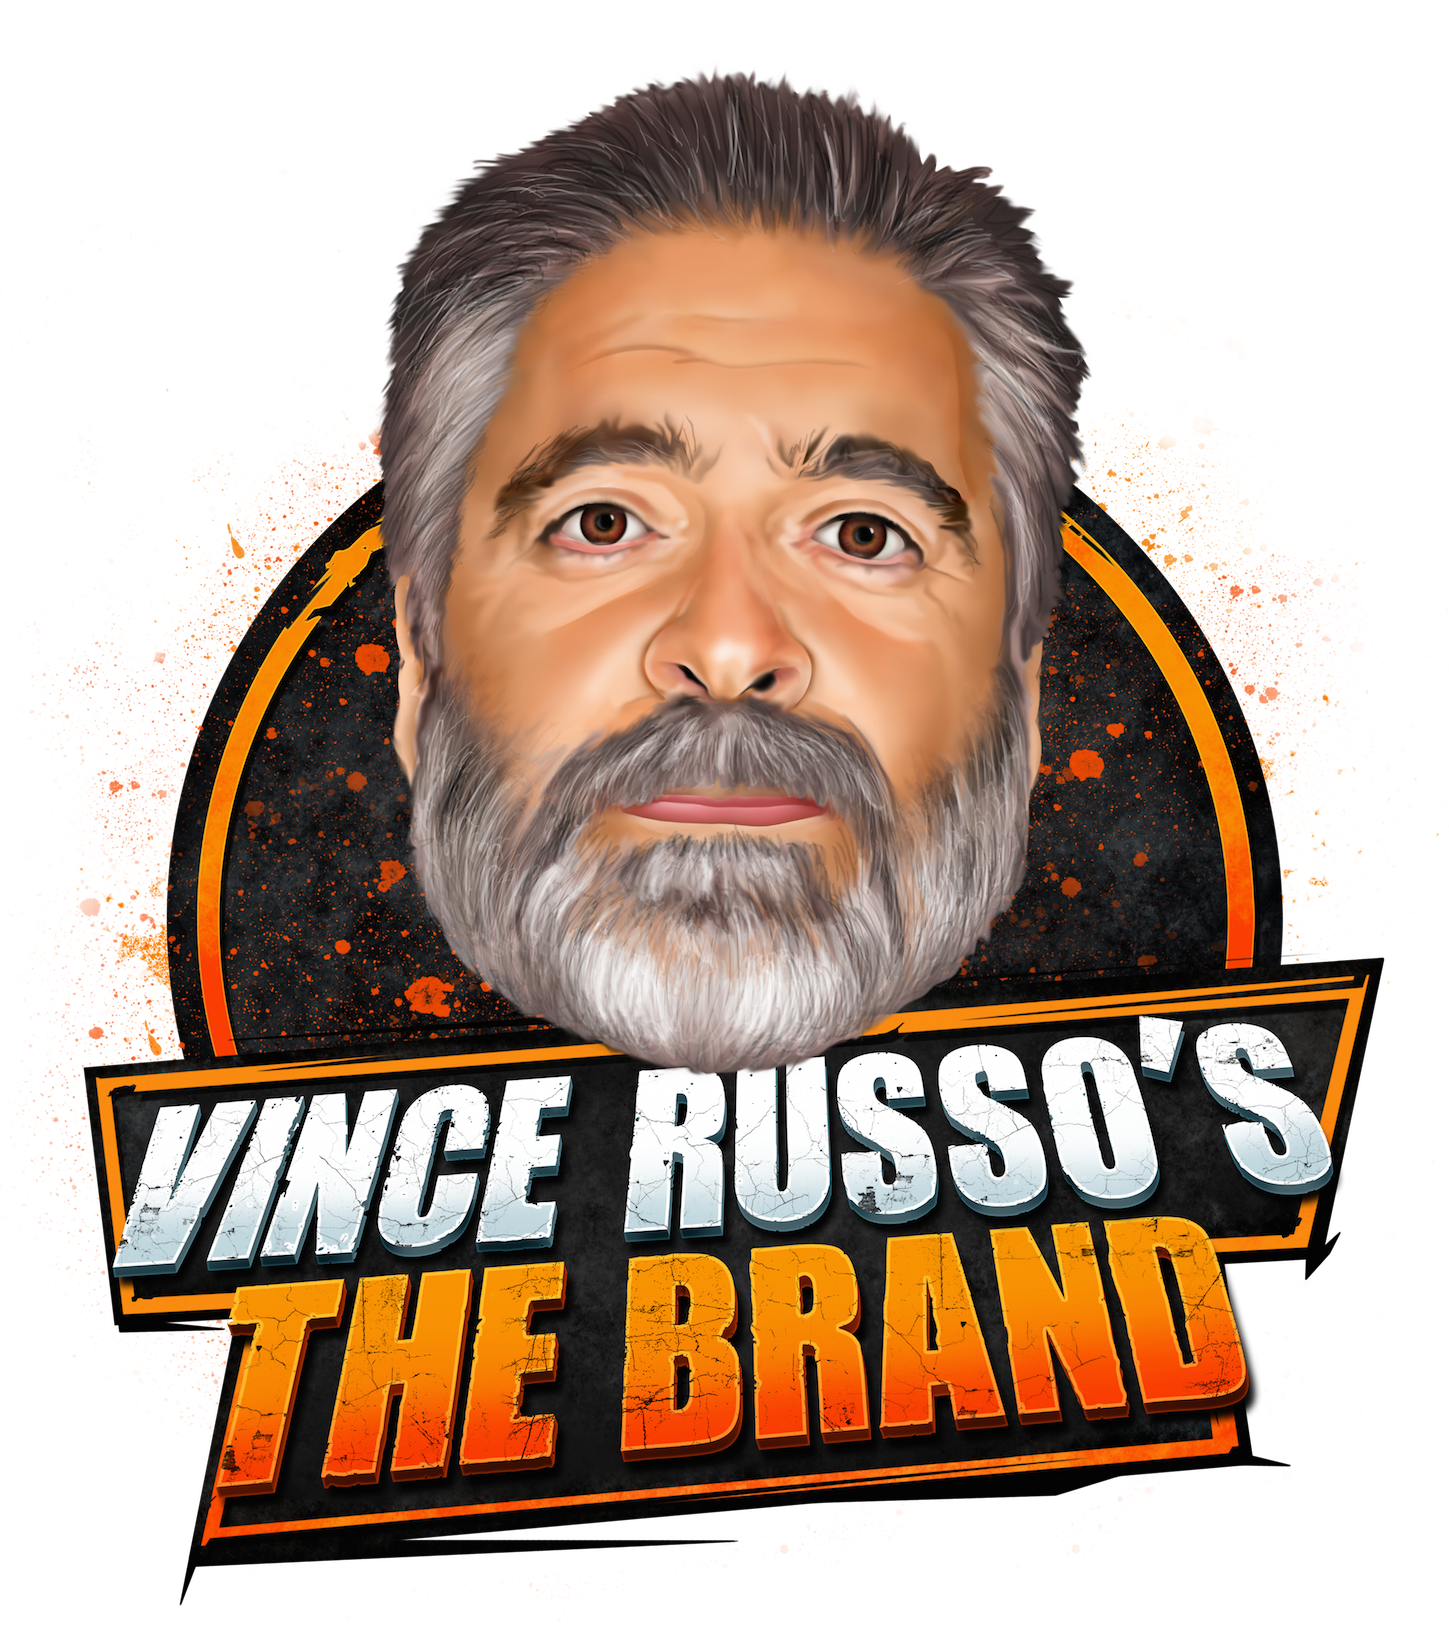 Vince Russo's The Brand show art